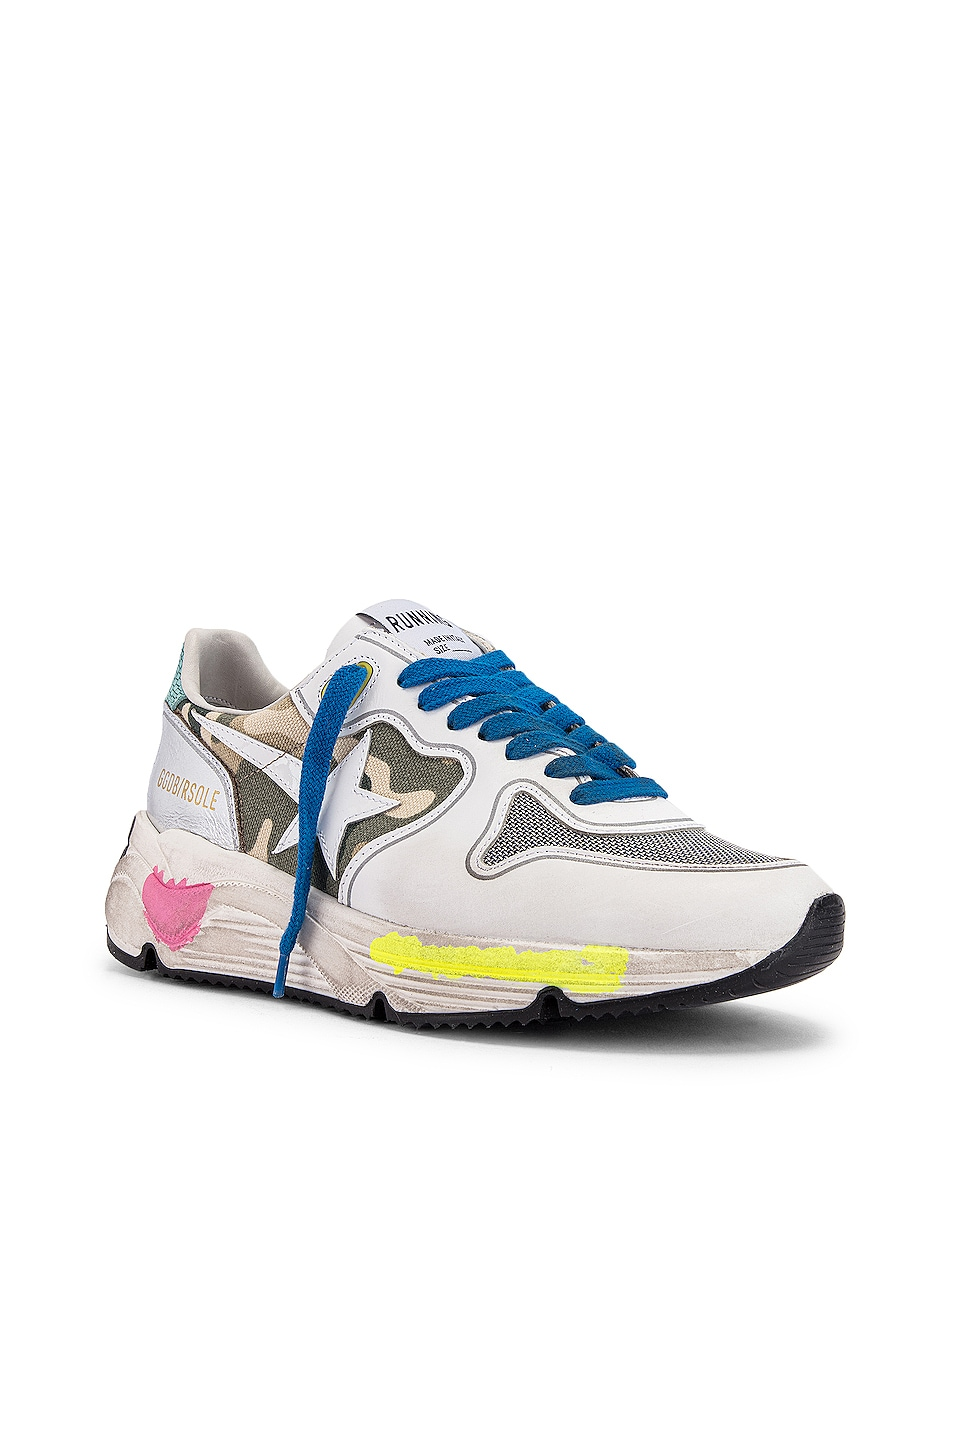 Image 2 of Golden Goose Running Sole Sneaker in White & Camouflage